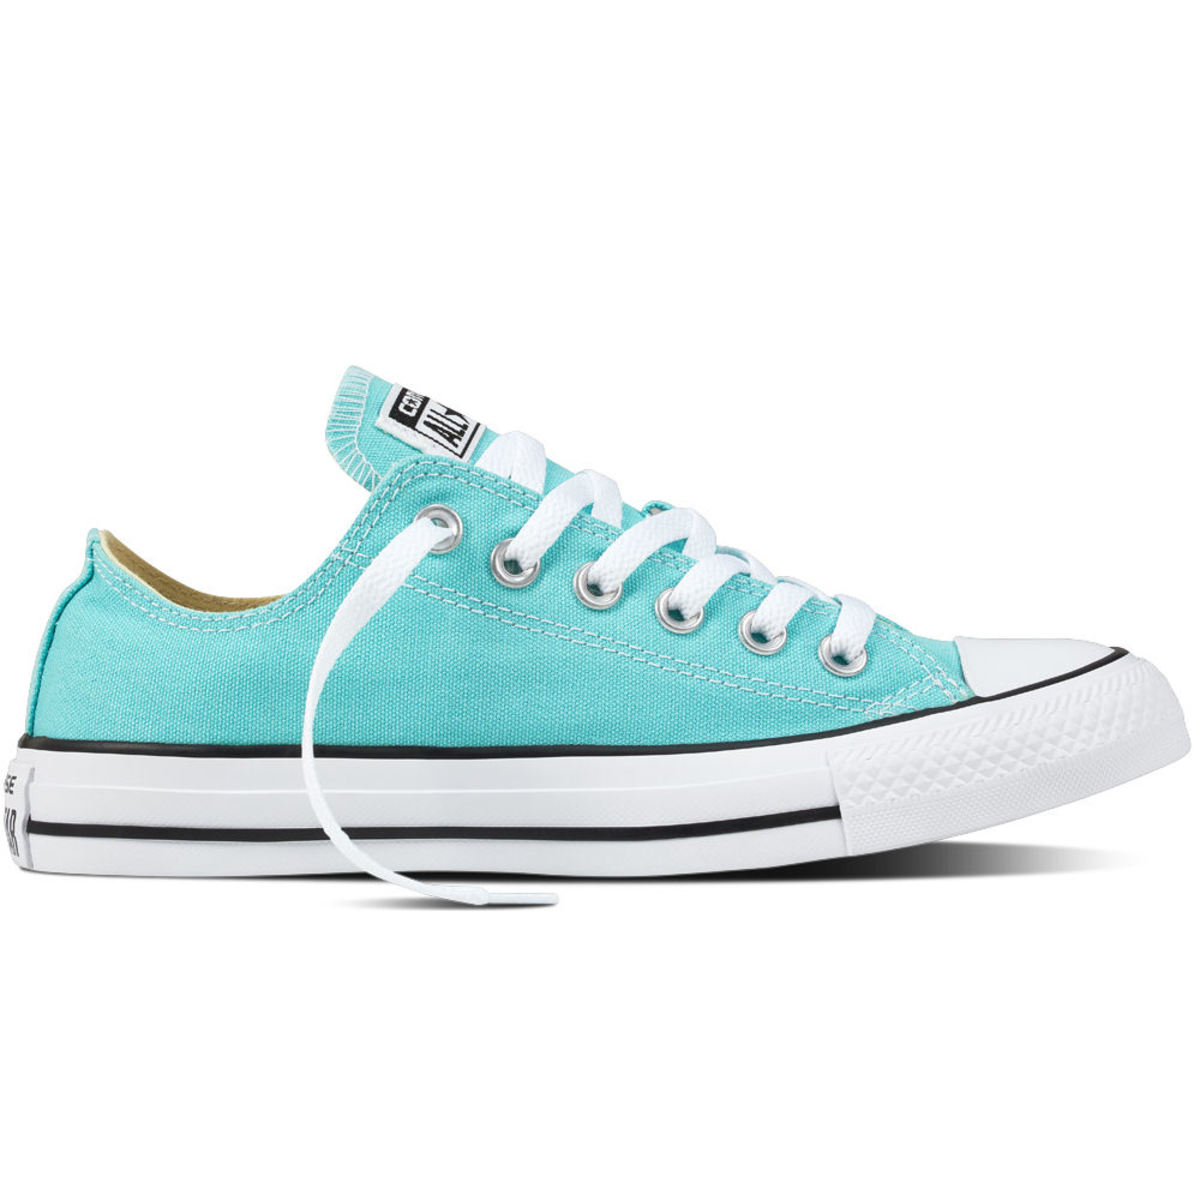 boty CONVERSE - Chuck Taylor All Star - C157643